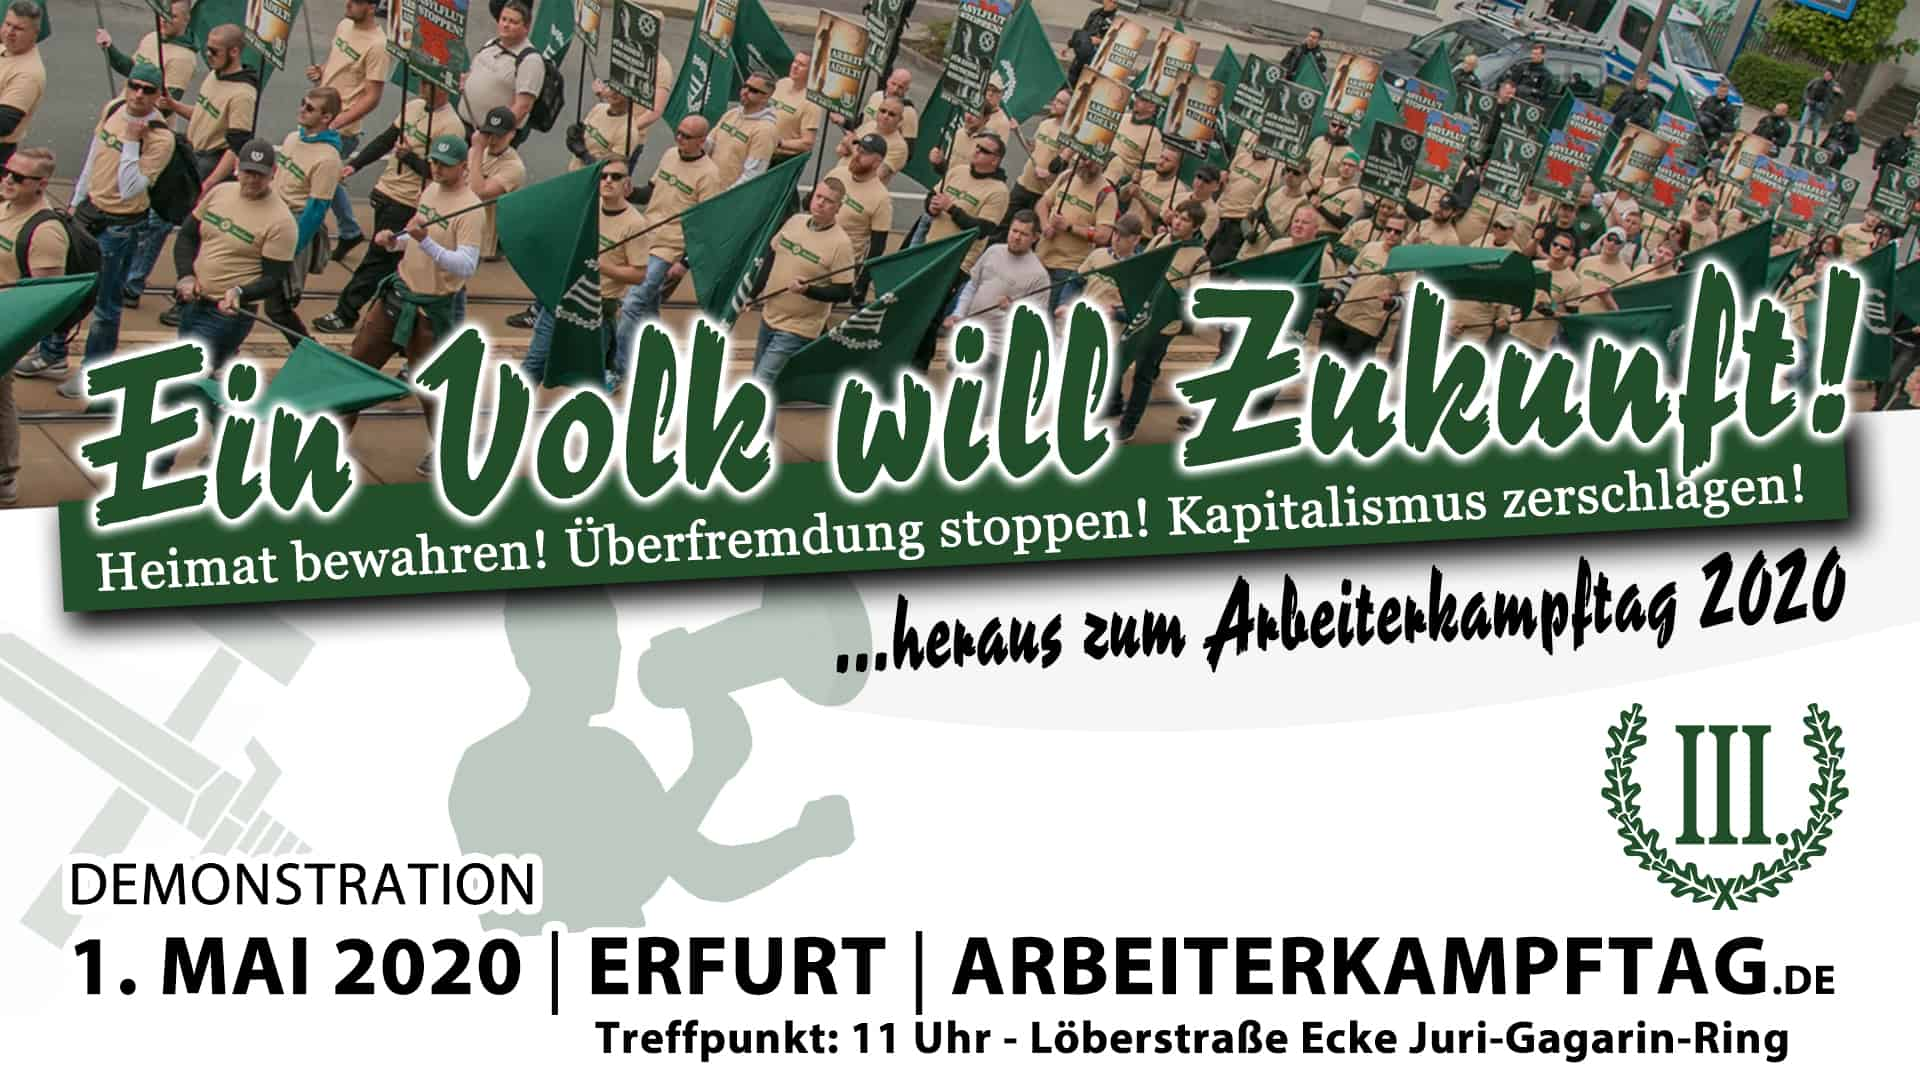 1. Mai Demonstration Erfurt 2020